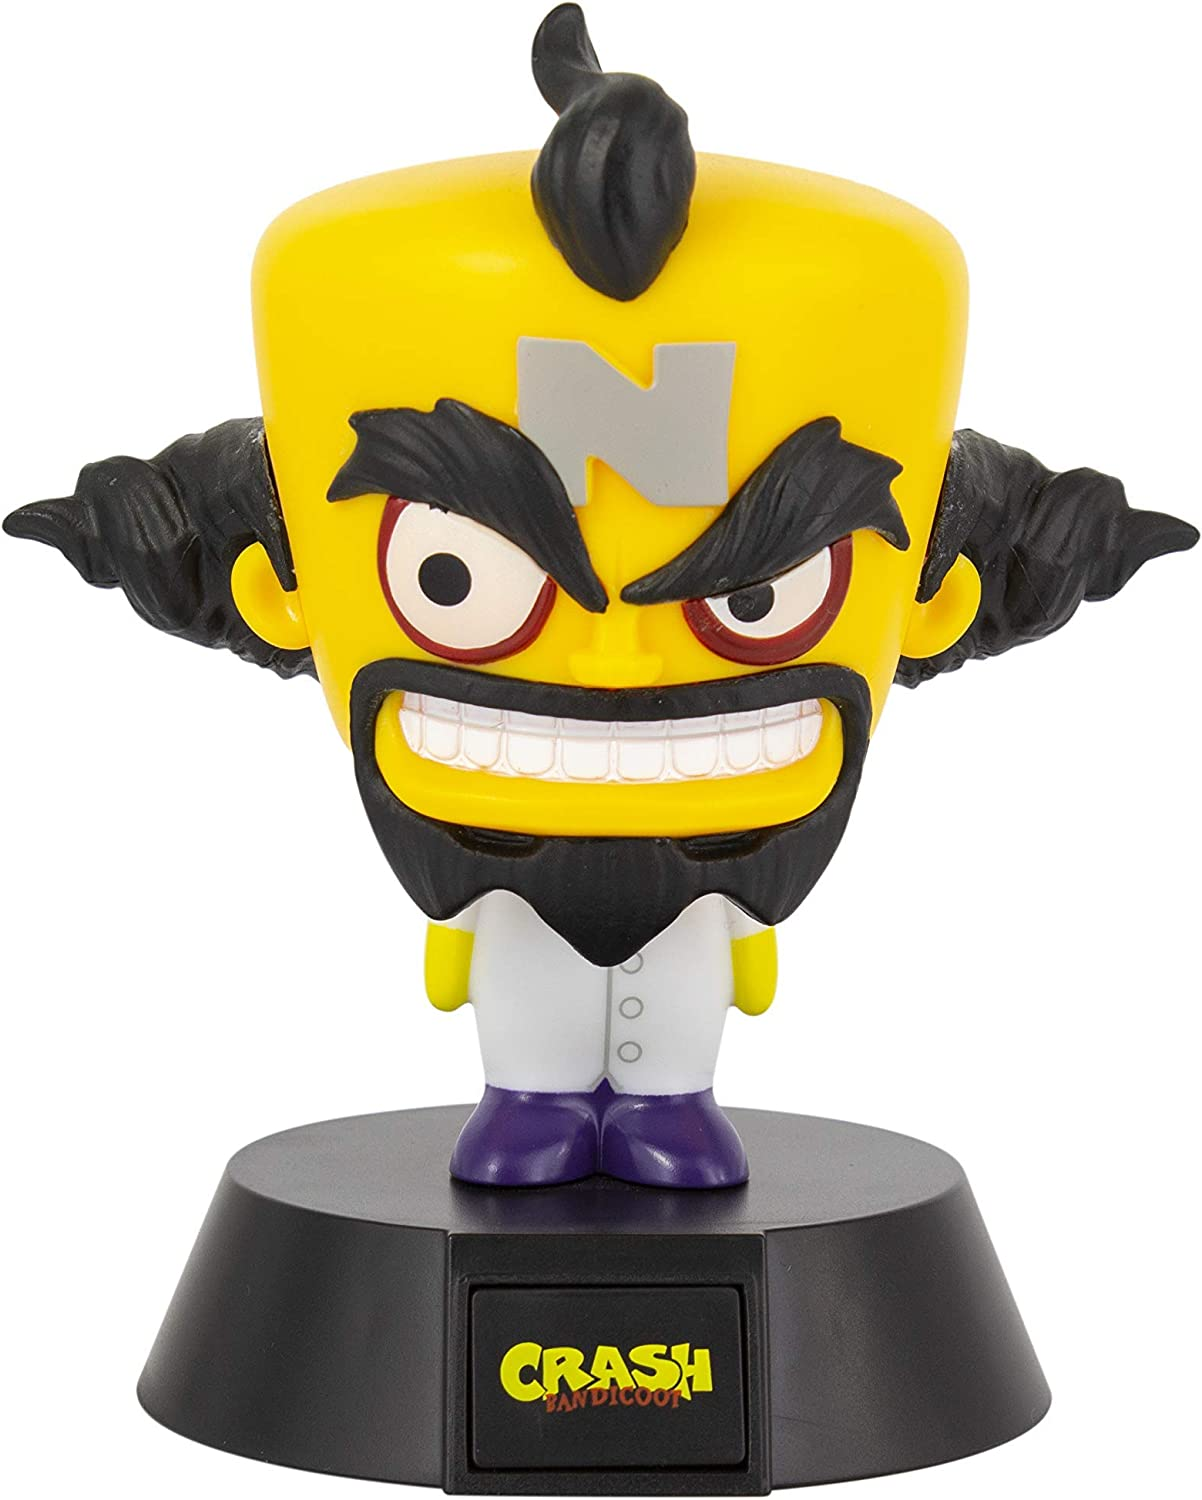 Office /& Home Paladone Mini Lamp Crash Bandicoot Doctor Neo Cortex Officially Licensed Collectable Pop Culture Gaming Merchandise Multi-Colour Ideal for Kids Bedrooms